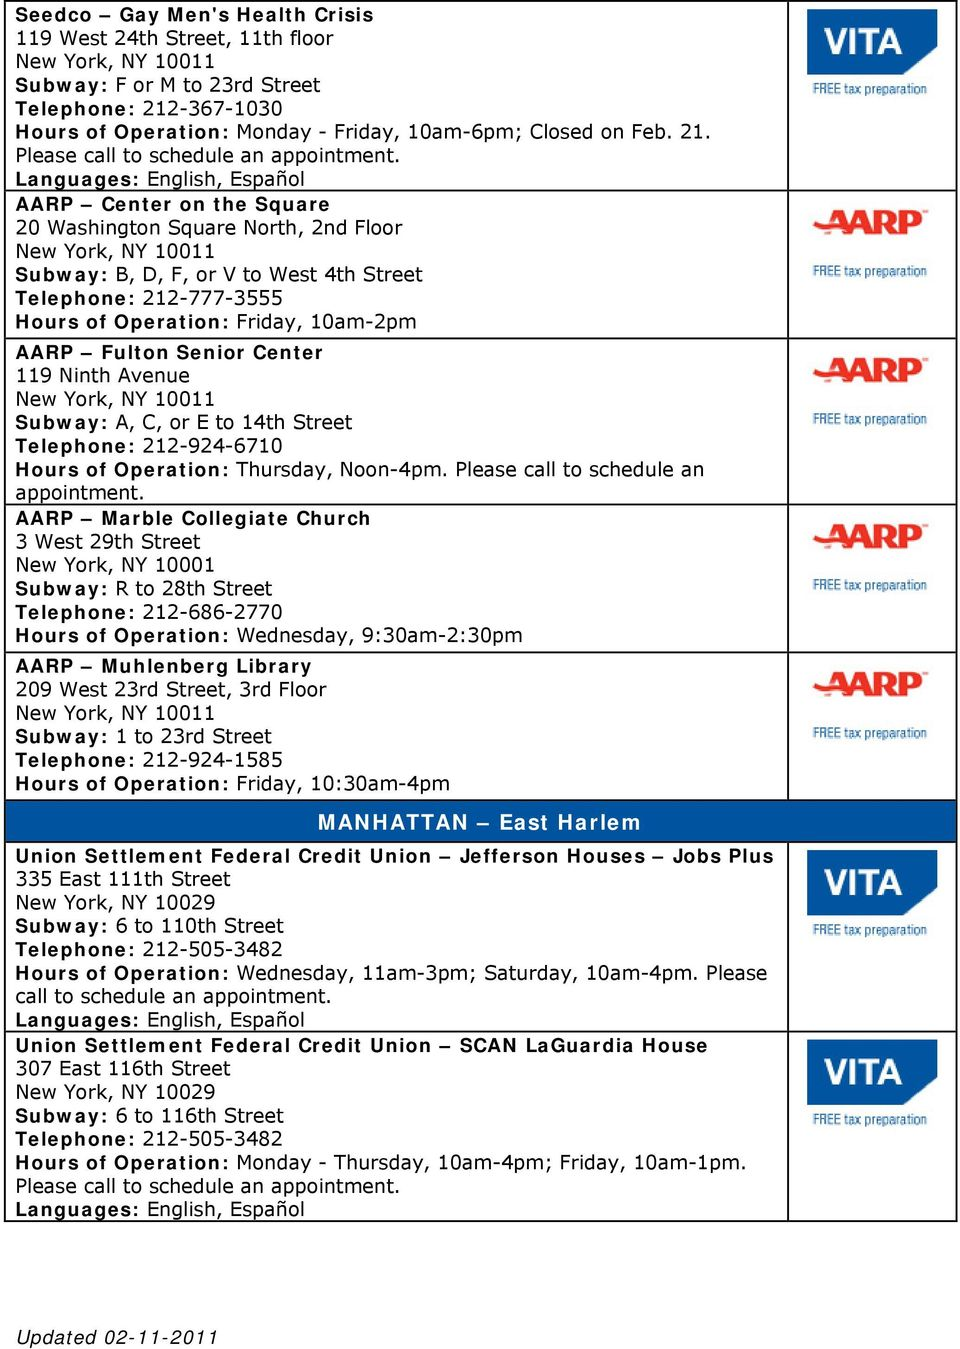 AARP Center on the Square 20 Washington Square North, 2nd Floor New York, NY 10011 Subway: B, D, F, or V to West 4th Street Telephone: 212-777-3555 Hours of Operation: Friday, 10am-2pm AARP Fulton